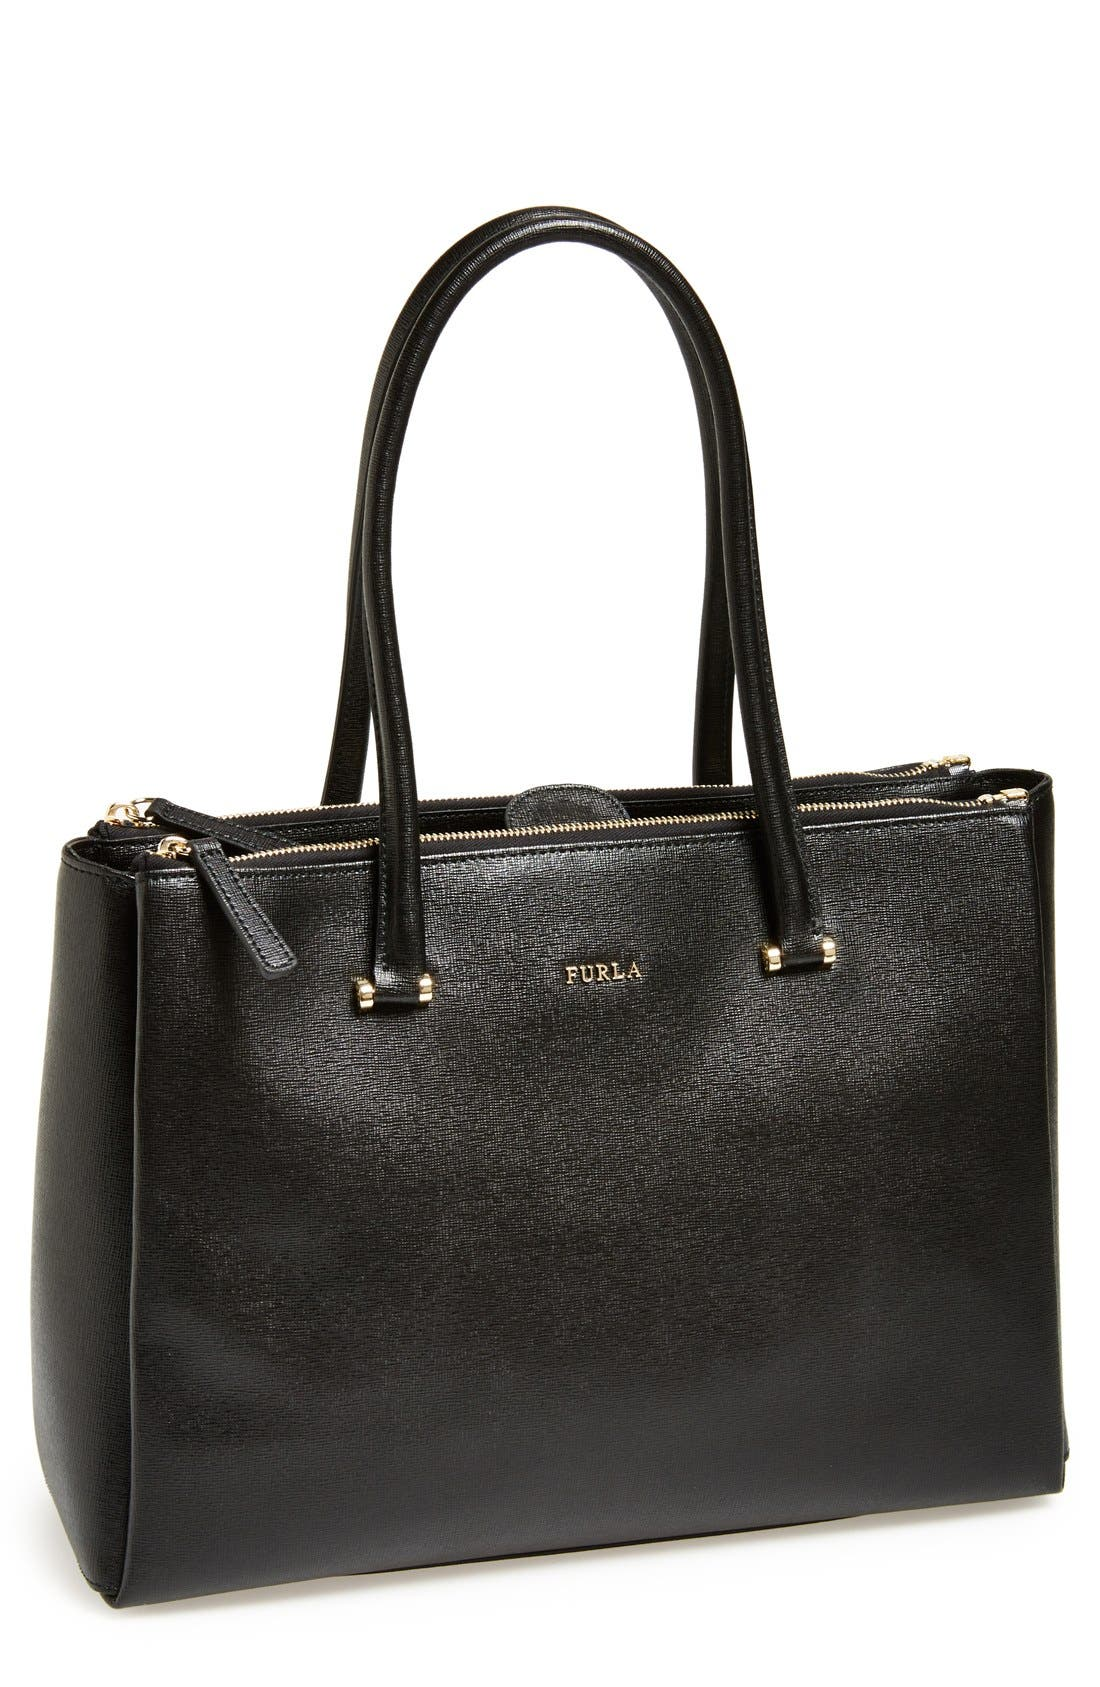 Alternate Image 1 Selected - Furla 'Large Lotus' Saffiano Leather Tote